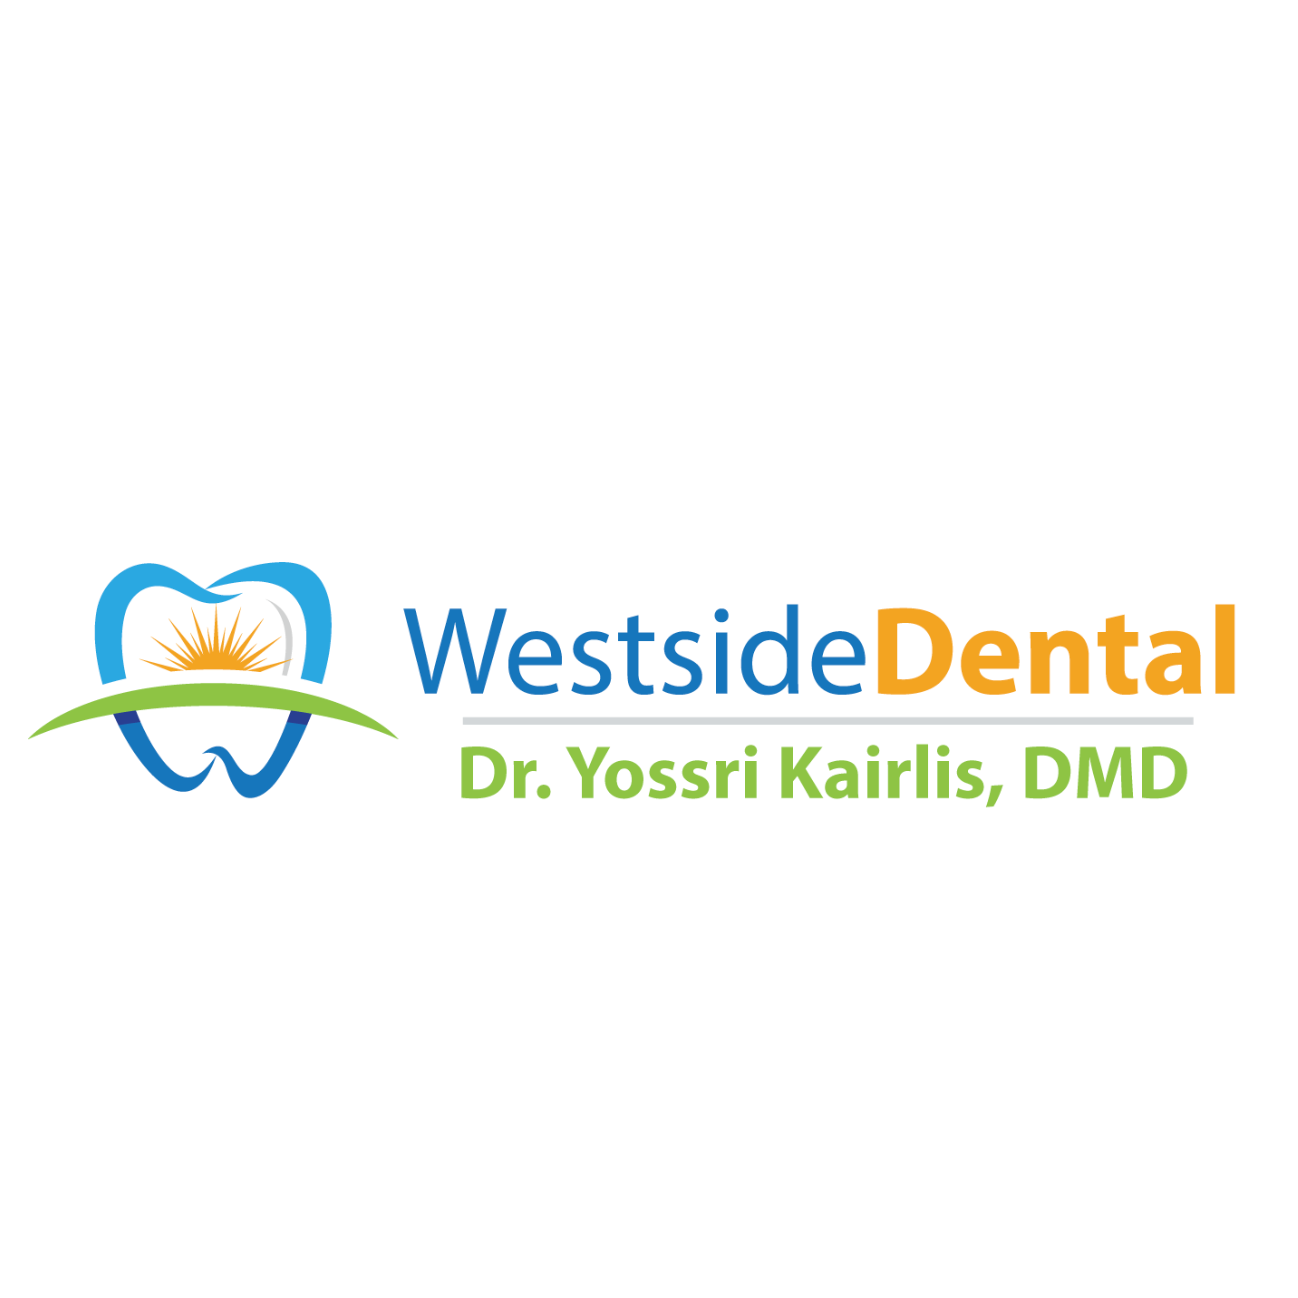 Westside Dental